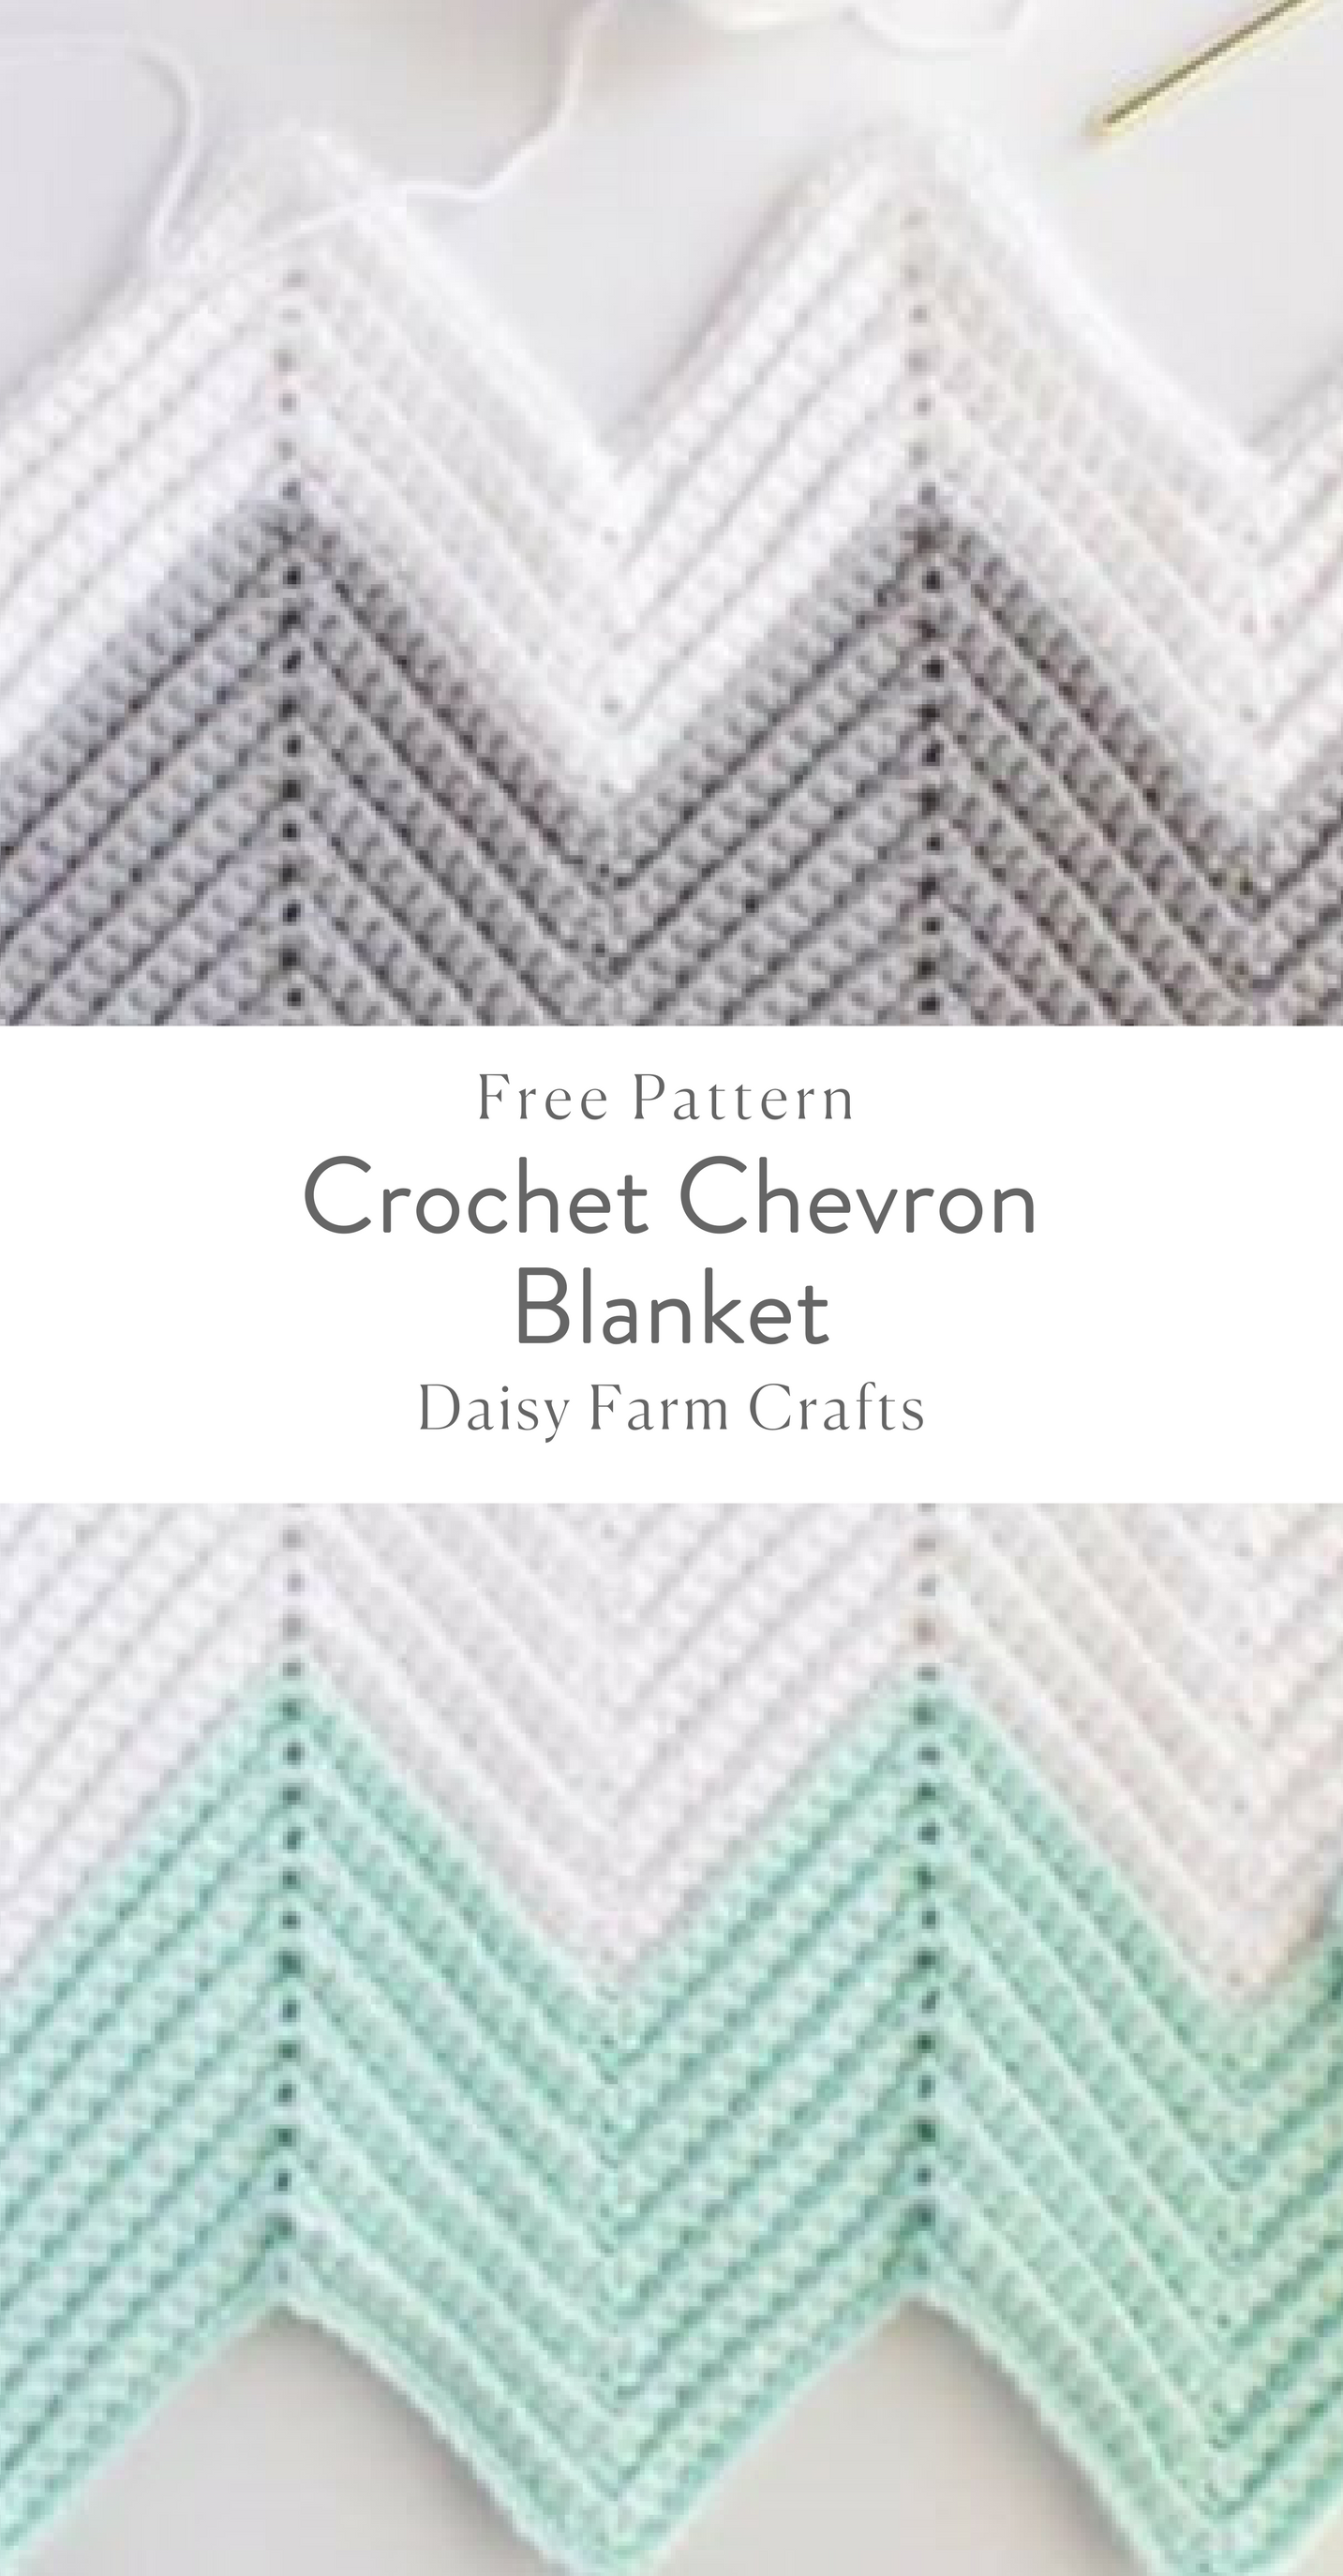 Free Pattern - Crochet Chevron Blanket | Crochet | Pinterest | Manta ...